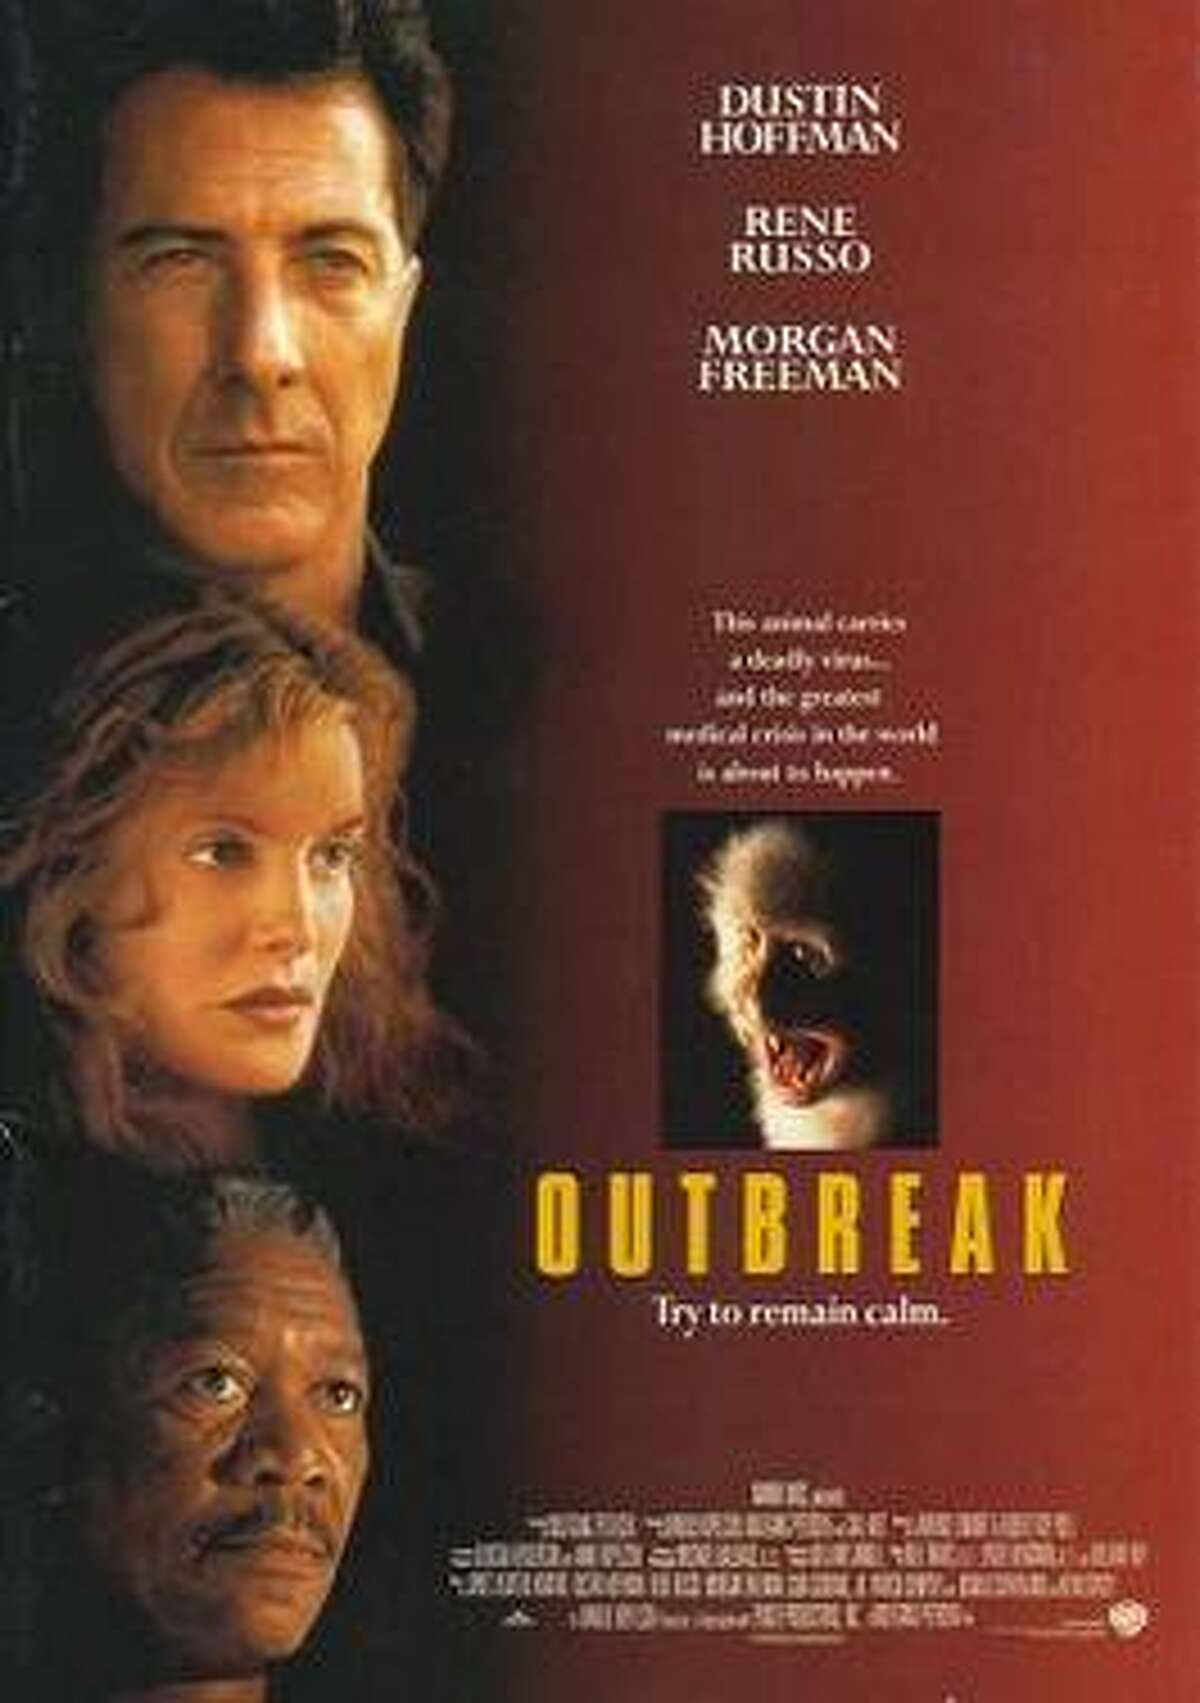 Outbreak (1995)Starring Dustin Hoffman, Rene Russo, Donald Sutherland and a young Cuba Gooding, Jr.,